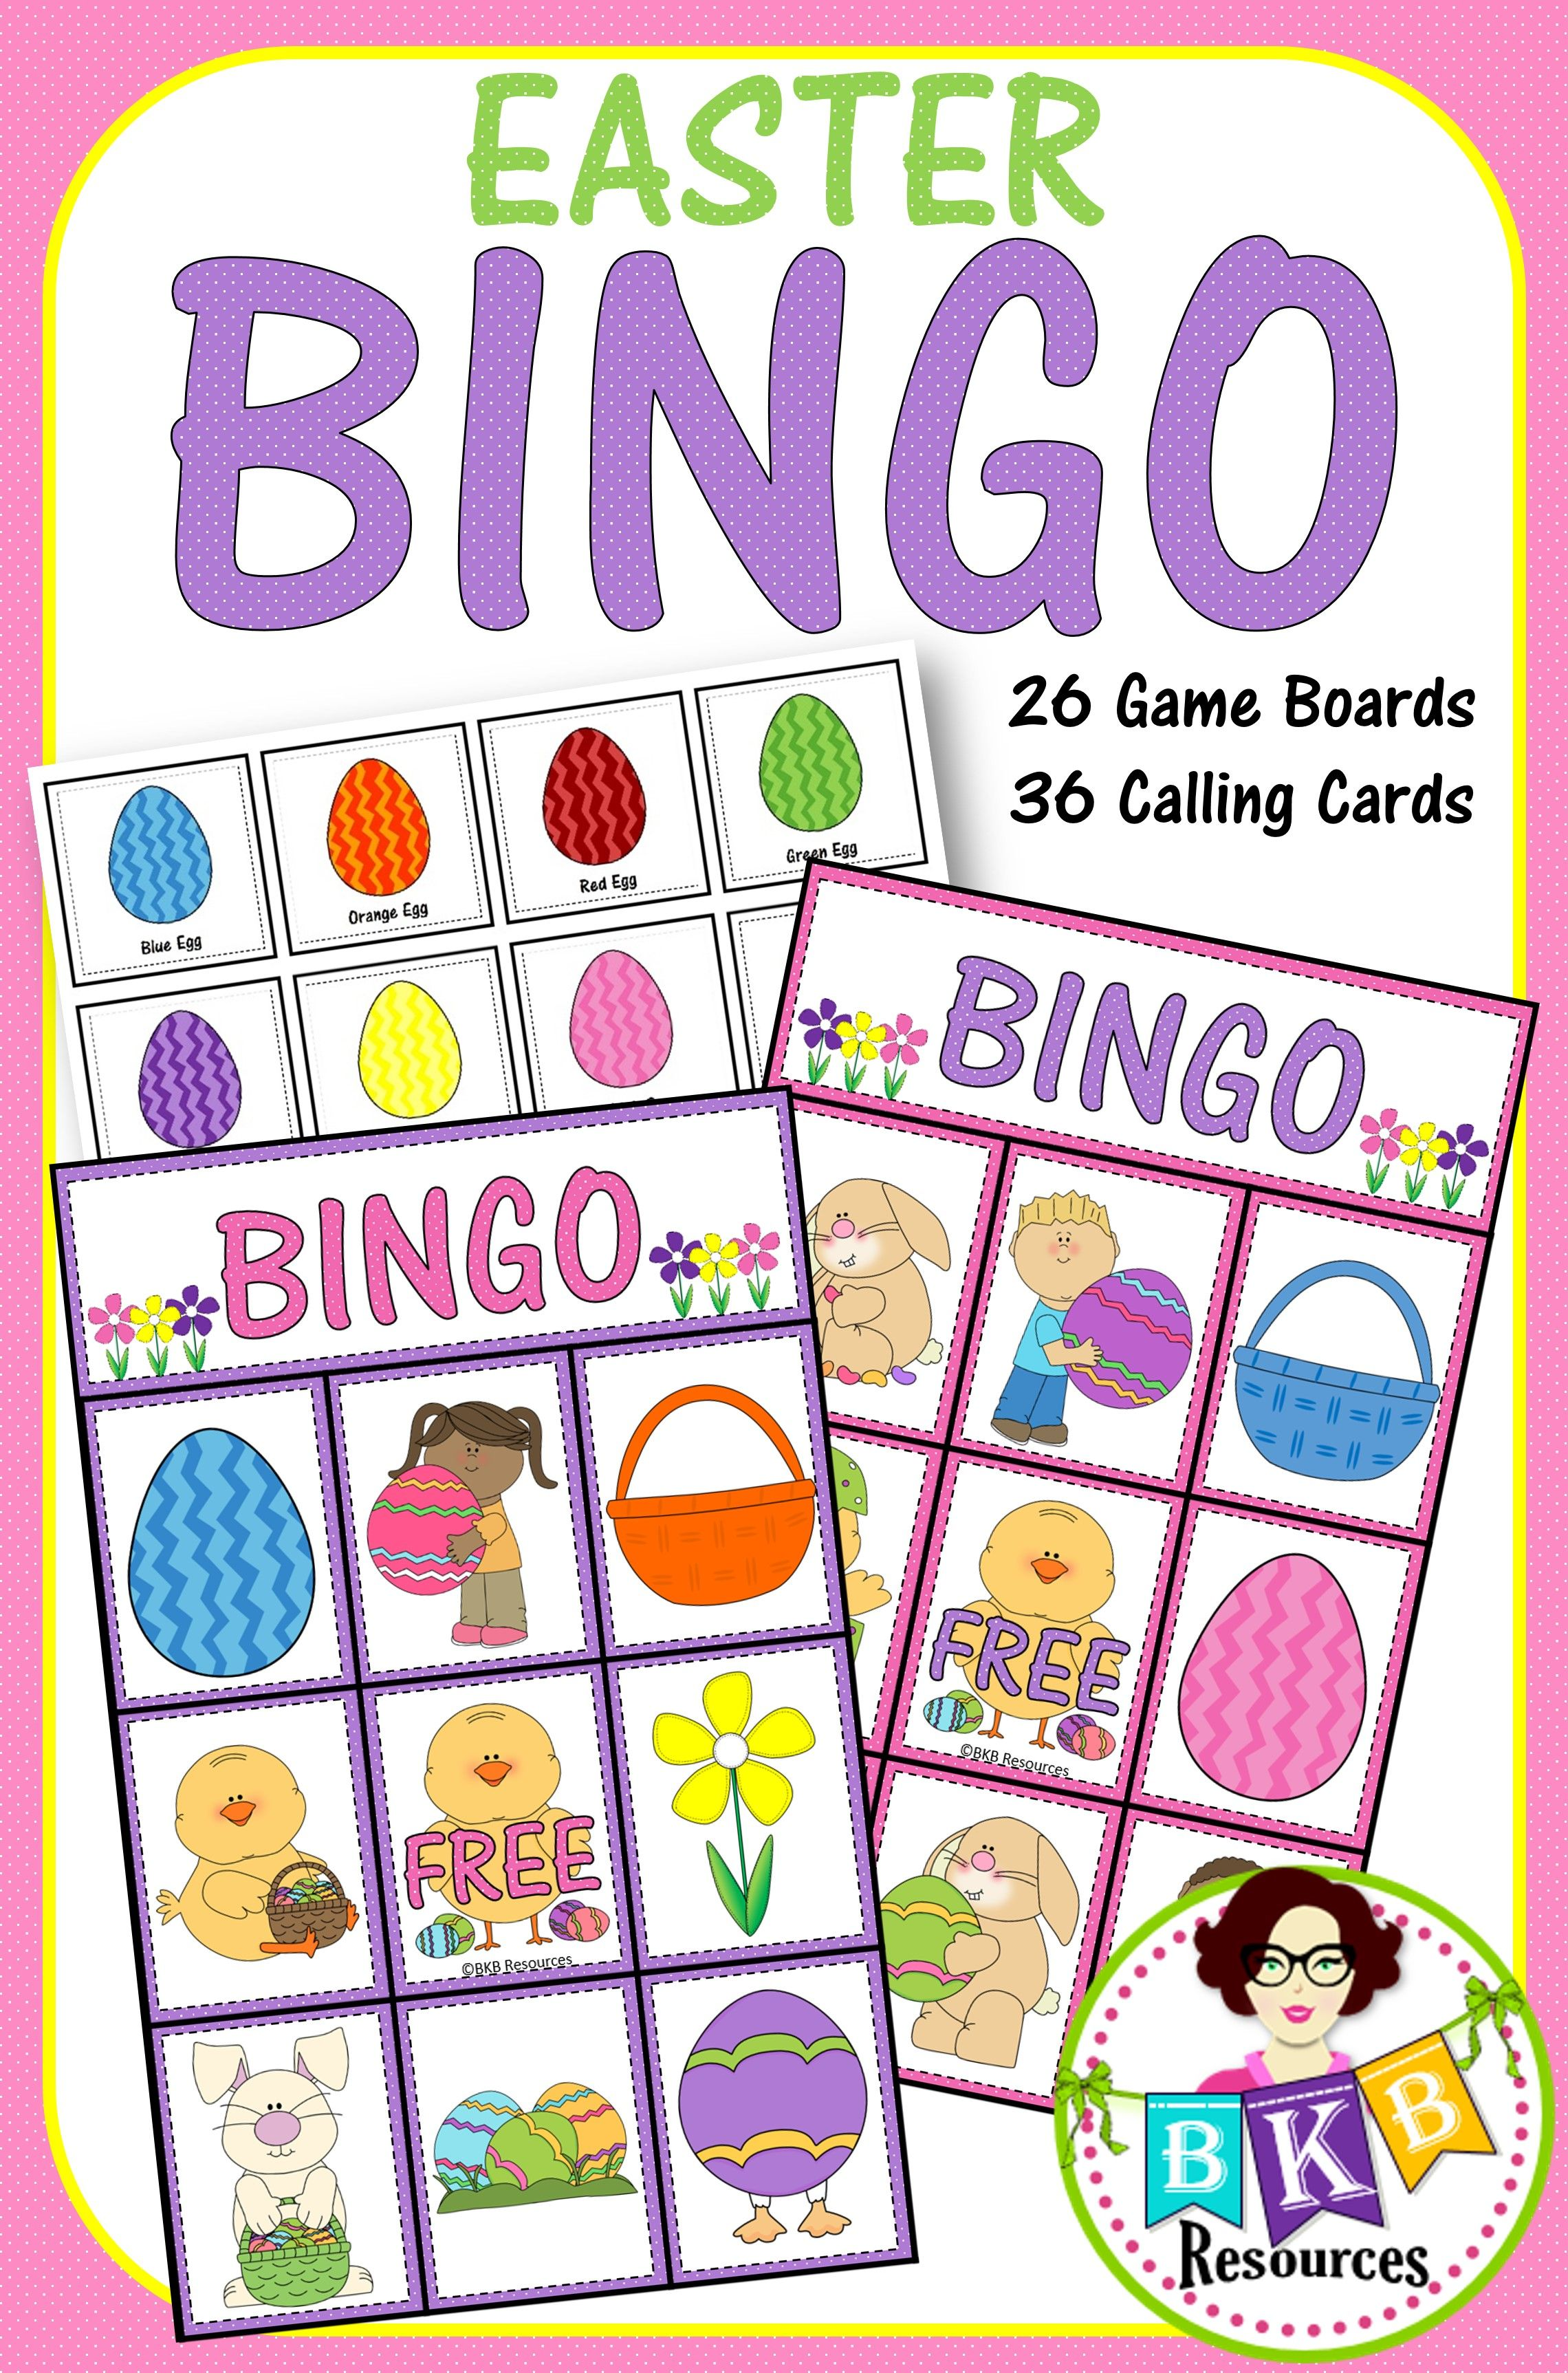 Bingo Easter Bingo This Set Includes 26 Game Boards And